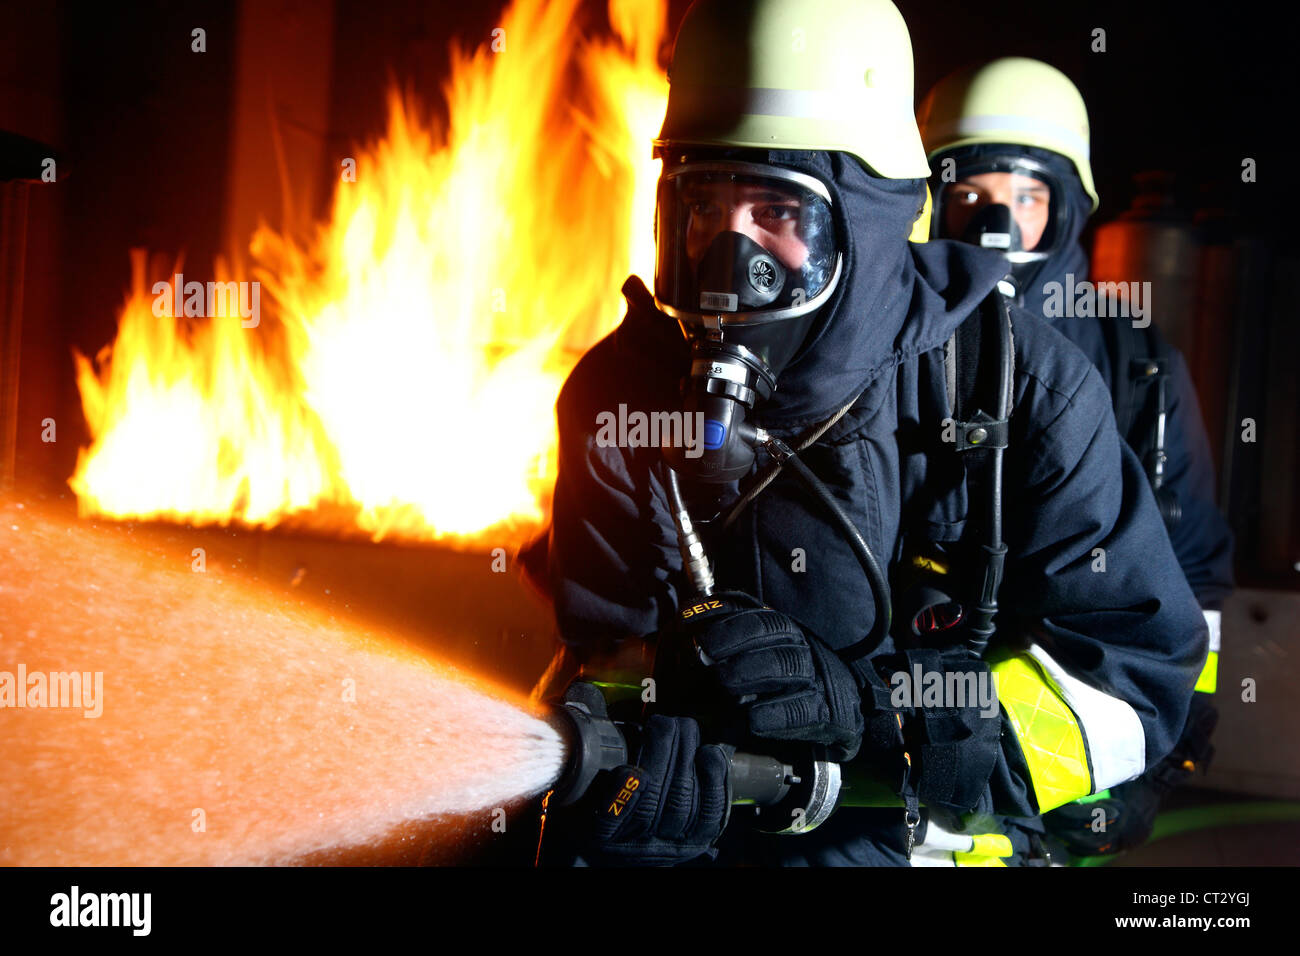 Fire service, fire men, fire fighting training at a fire training house. Firefighters with breathing apparatus. - Stock Image